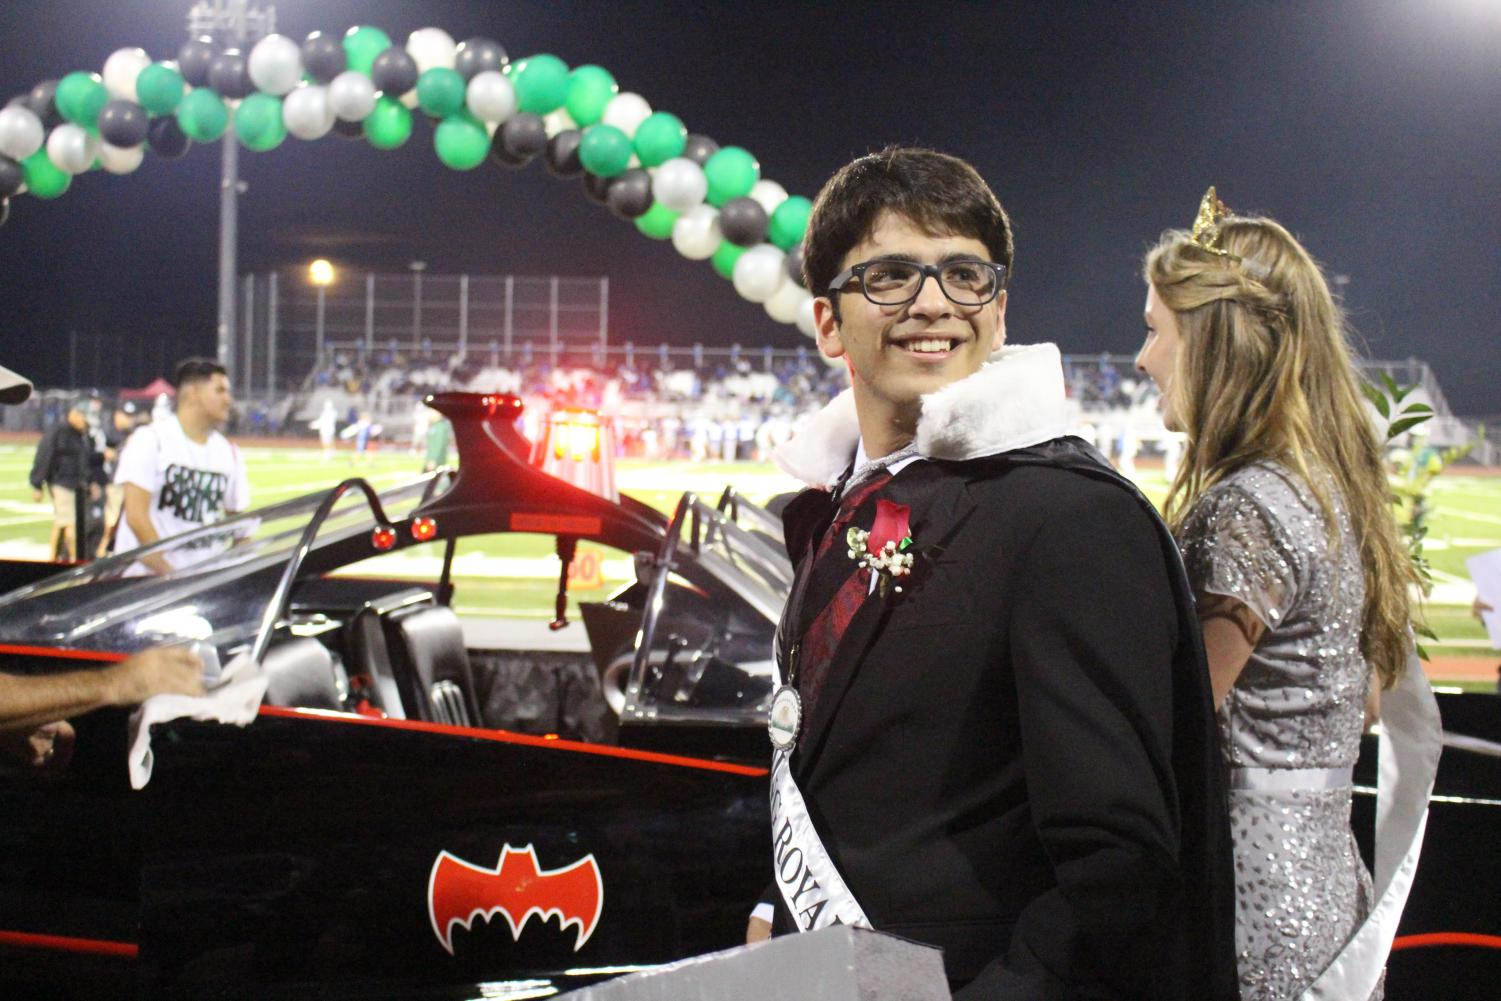 Senior King Rami Sadek and Queen Taylor Harris celebrate their victory with a ride in the Bat-Mobile.